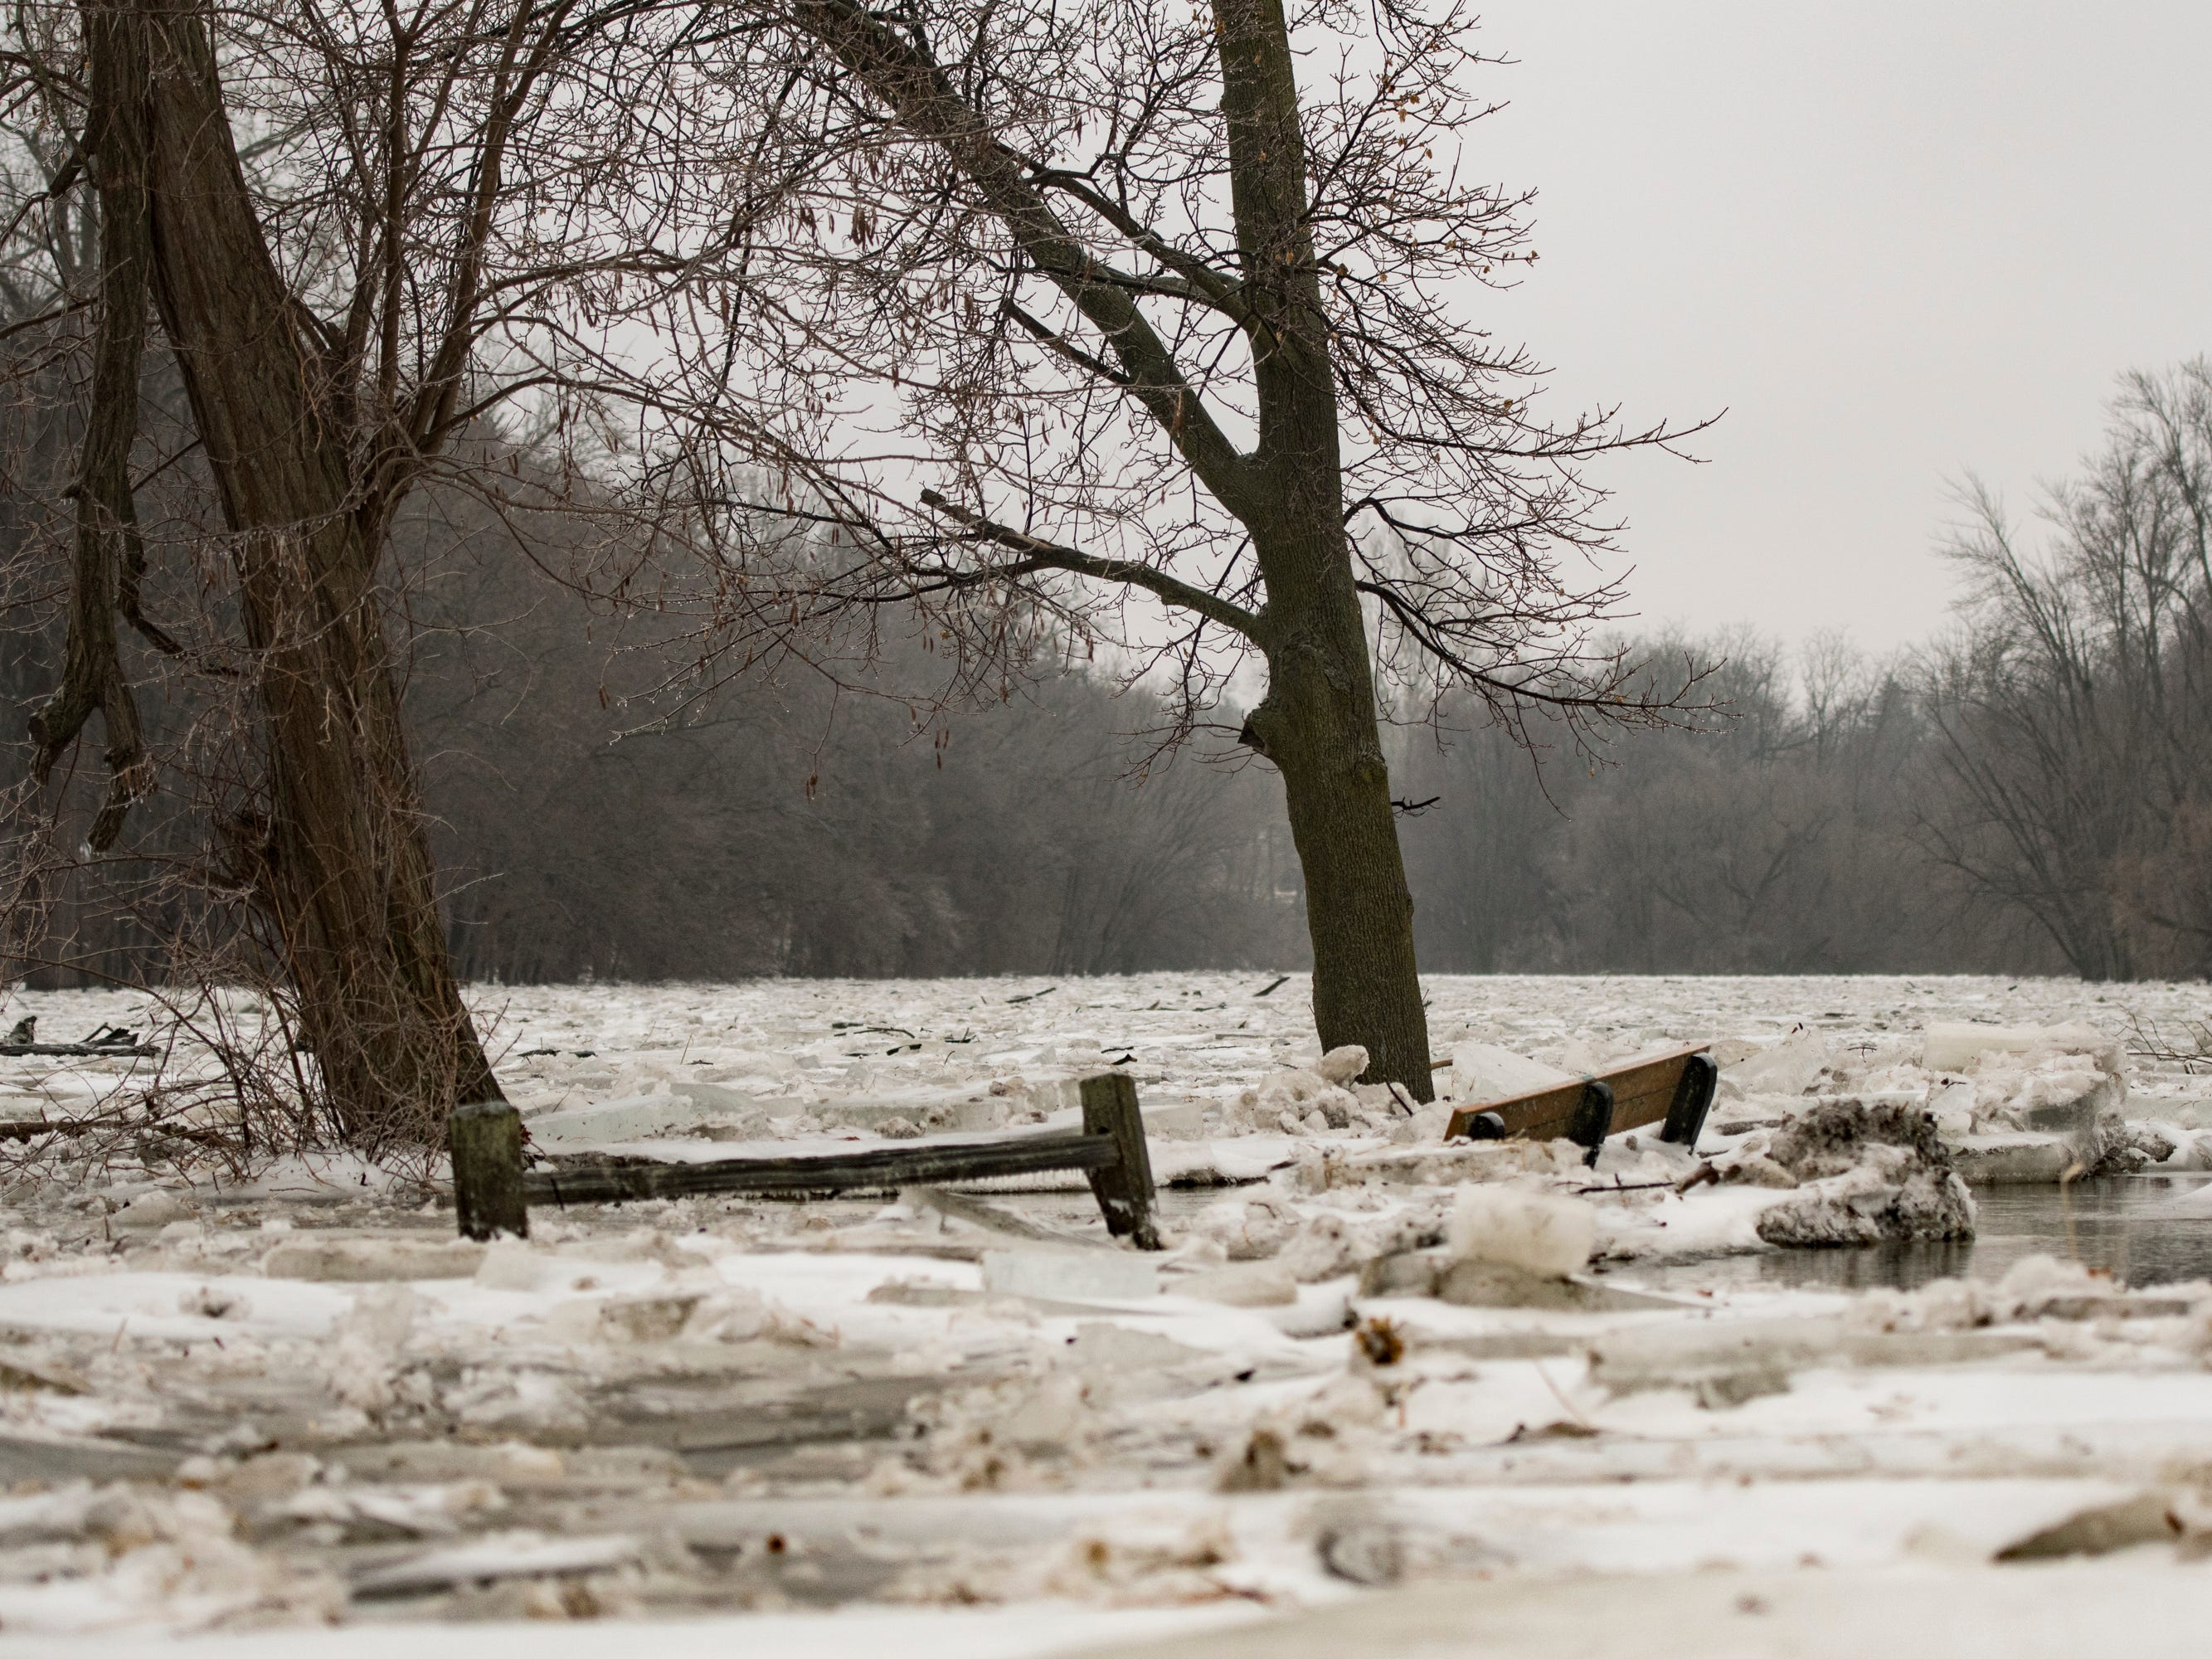 The Grand River and river trail in downtown Portland, Michigan, Wednesday morning, Feb. 6, 2019.  About 50 people were evacuated late Tuesday evening through early Wednesday morning due to flooding along the Grand River caused by melting snow and an ice jam in the river.  [Matthew Dae Smith/Lansing State Journal]